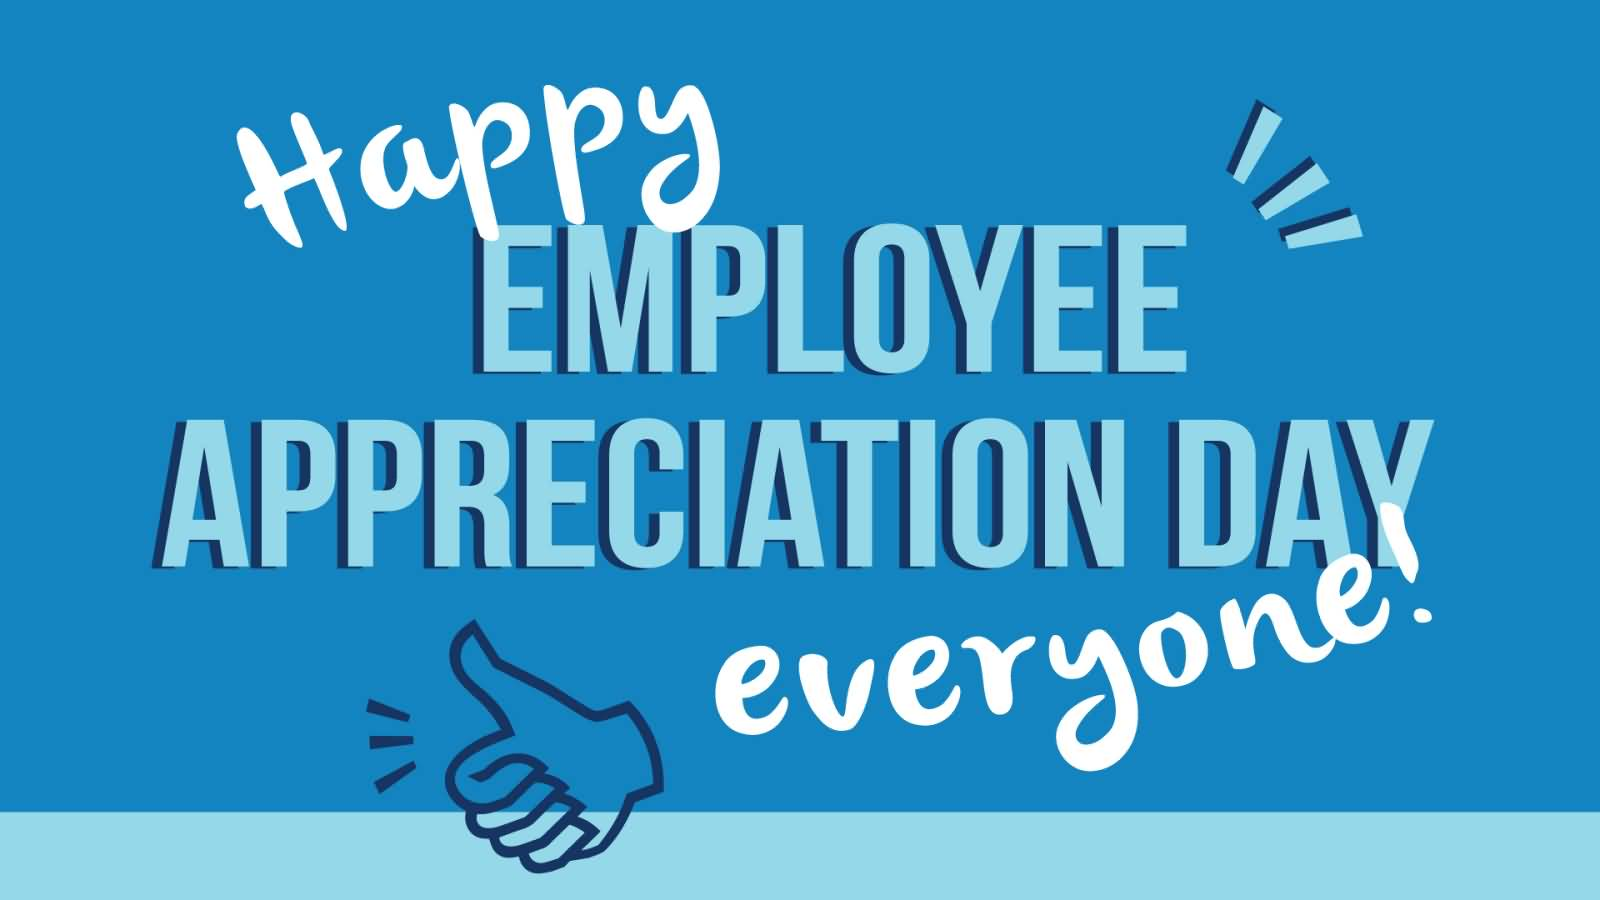 Employee Appreciation Quotes Happy Employee Appreciation Day Everyone